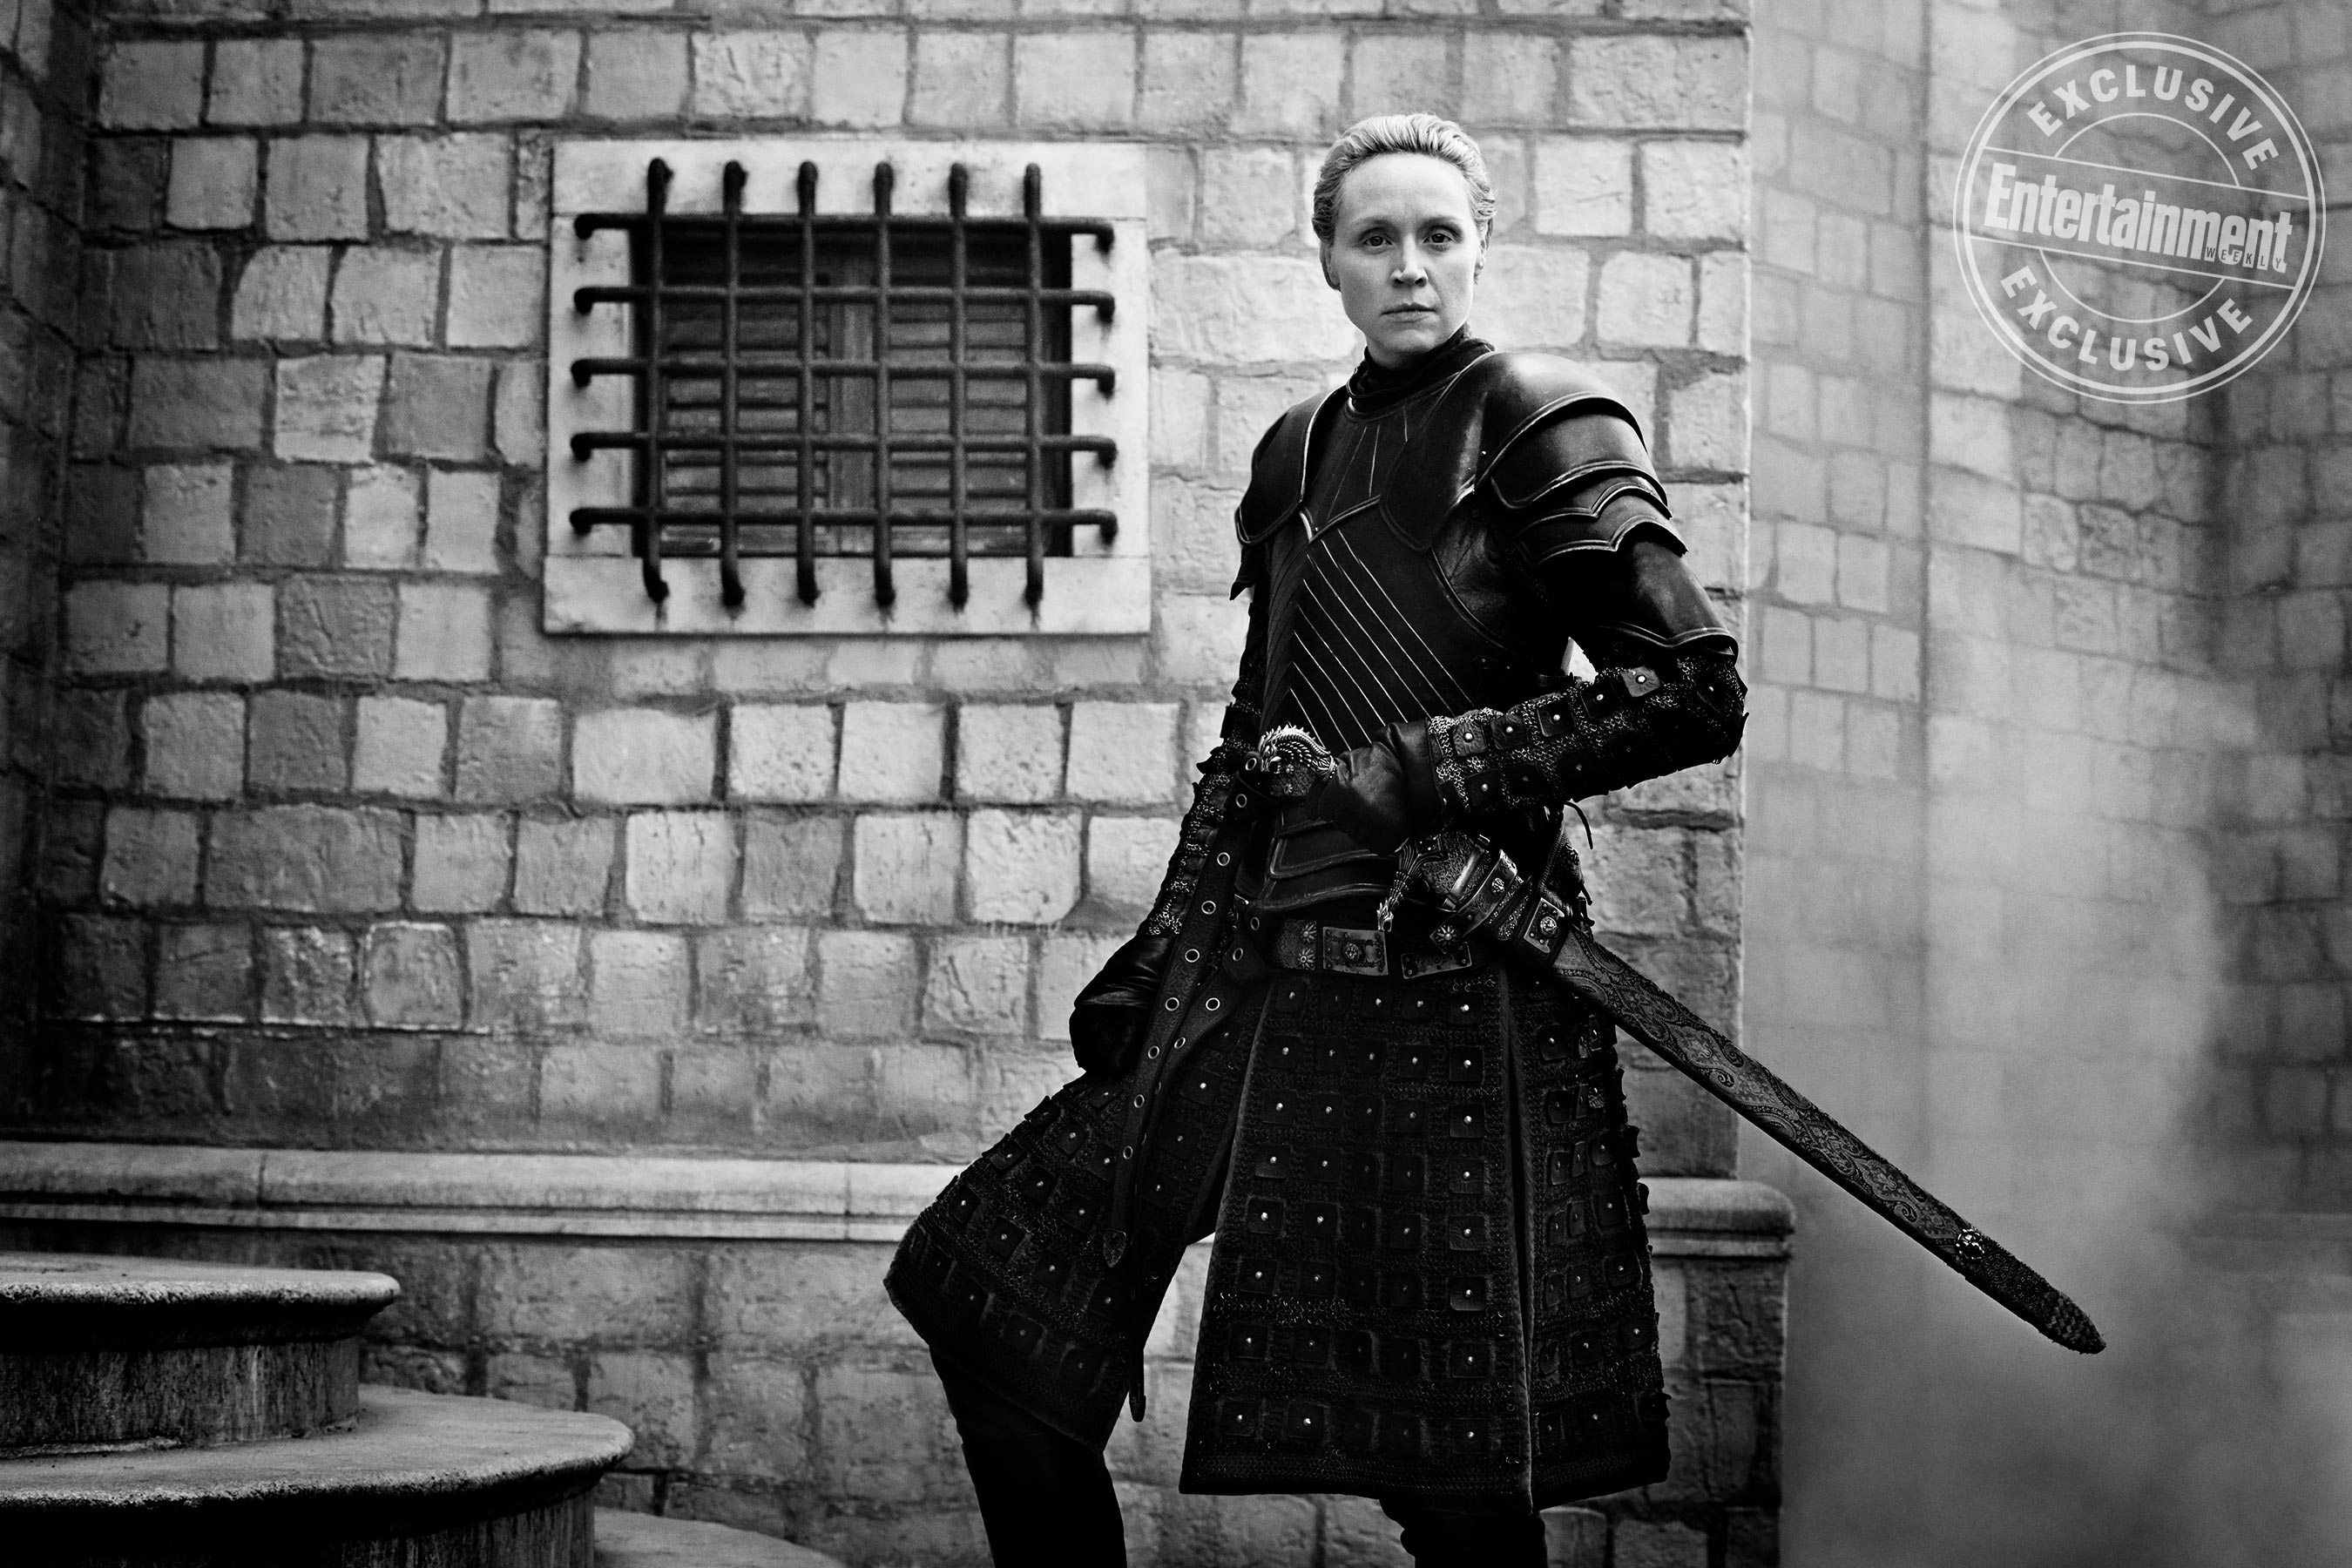 Entertainment Weekly Photoshoot - 2019 - Gwendoline Christie as Brienne